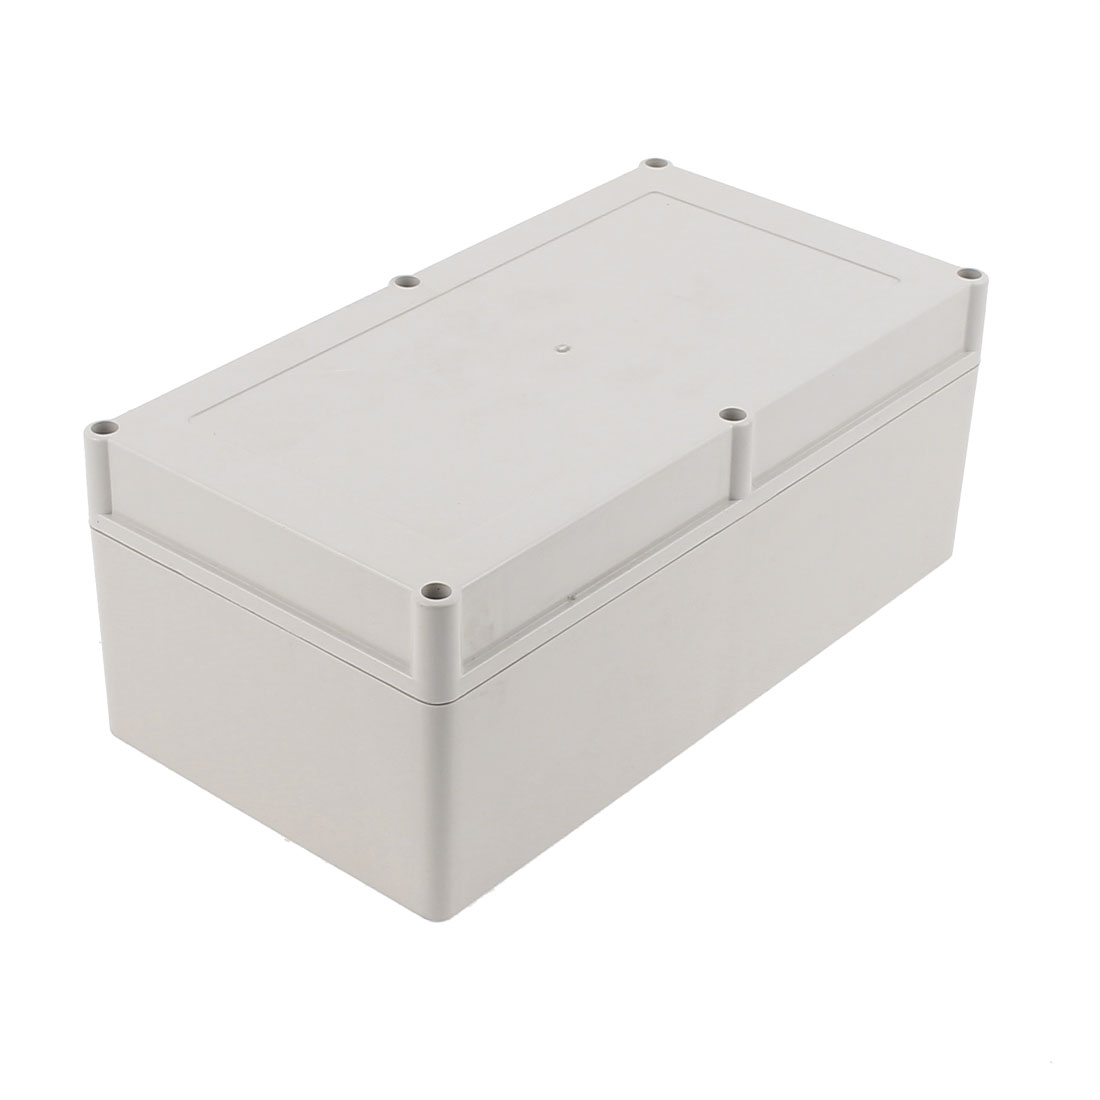 265 x 140 x 105mm Dustproof IP65 Junction Box Terminal Connection Box Enclosure